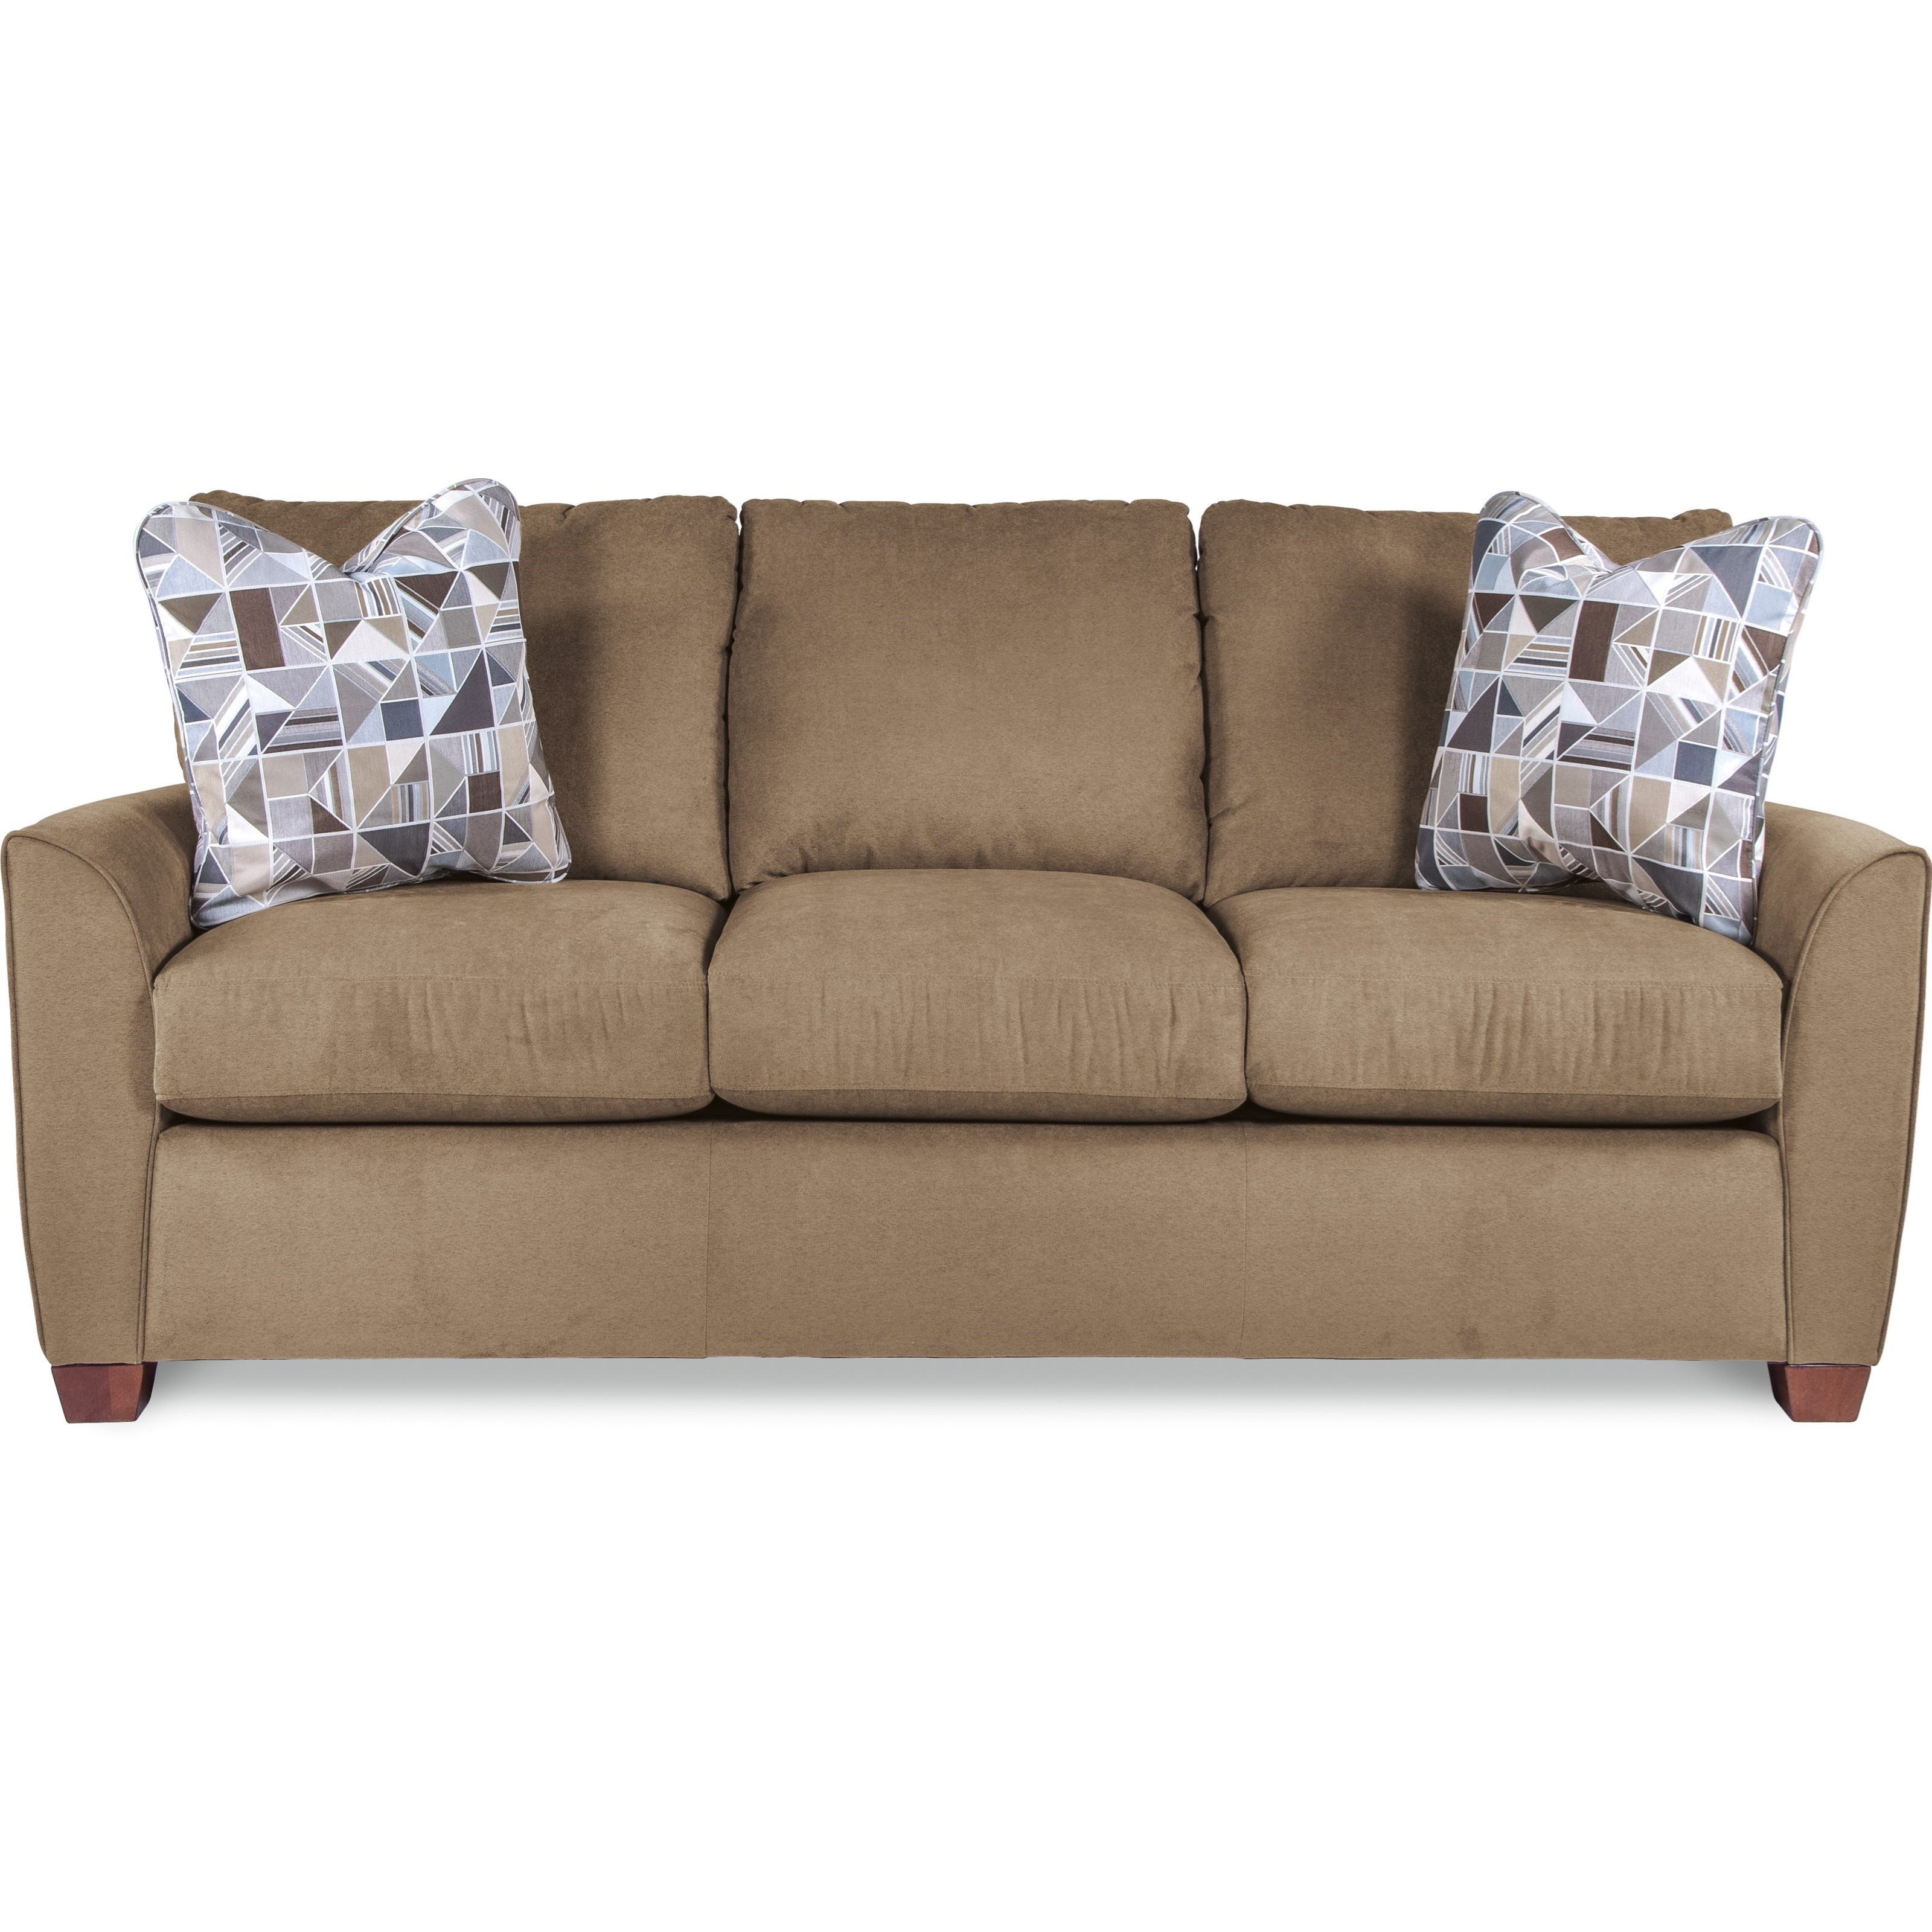 Casual Sofa With Premier Comfortcore Cushions By La Z Boy